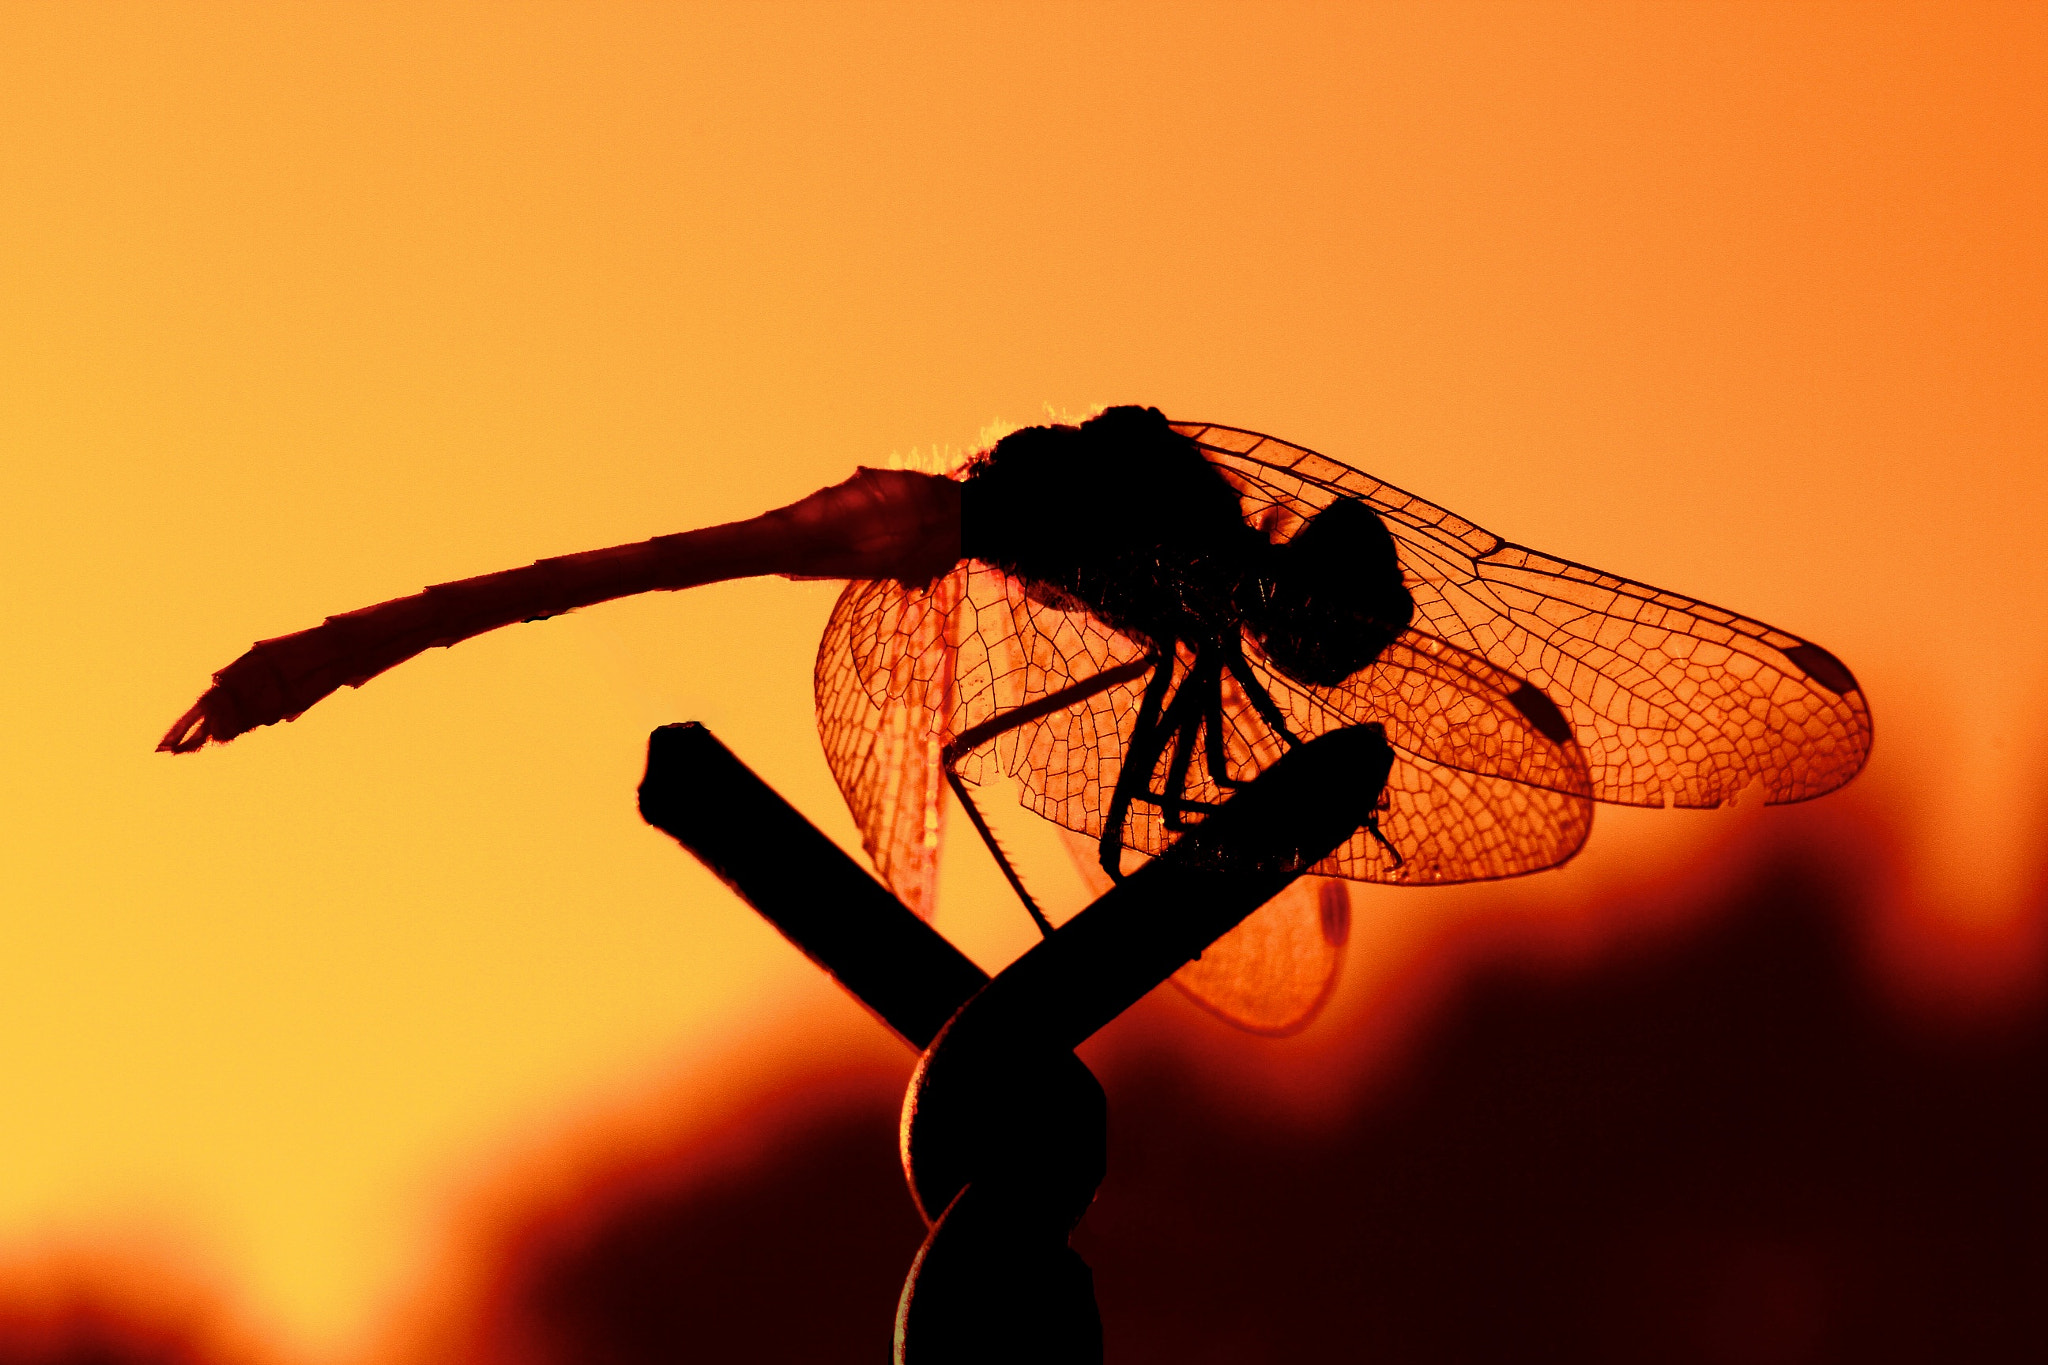 Photograph Dragon Fly by Matteo Zin on 500px